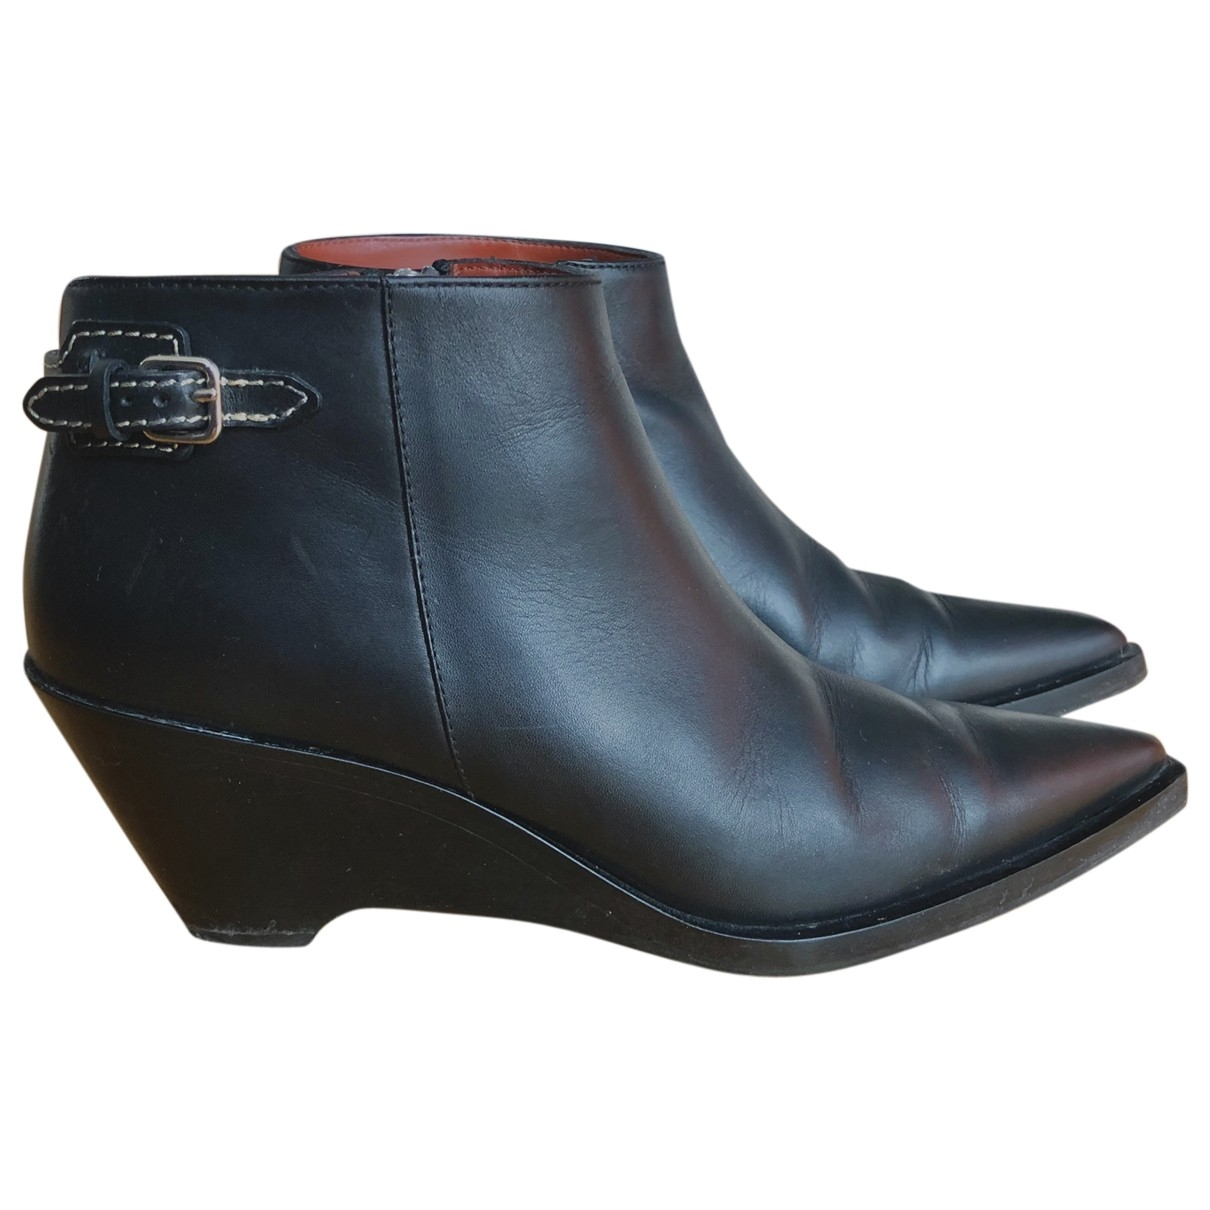 Acne Studios \N Black Leather Ankle boots for Women 37 EU